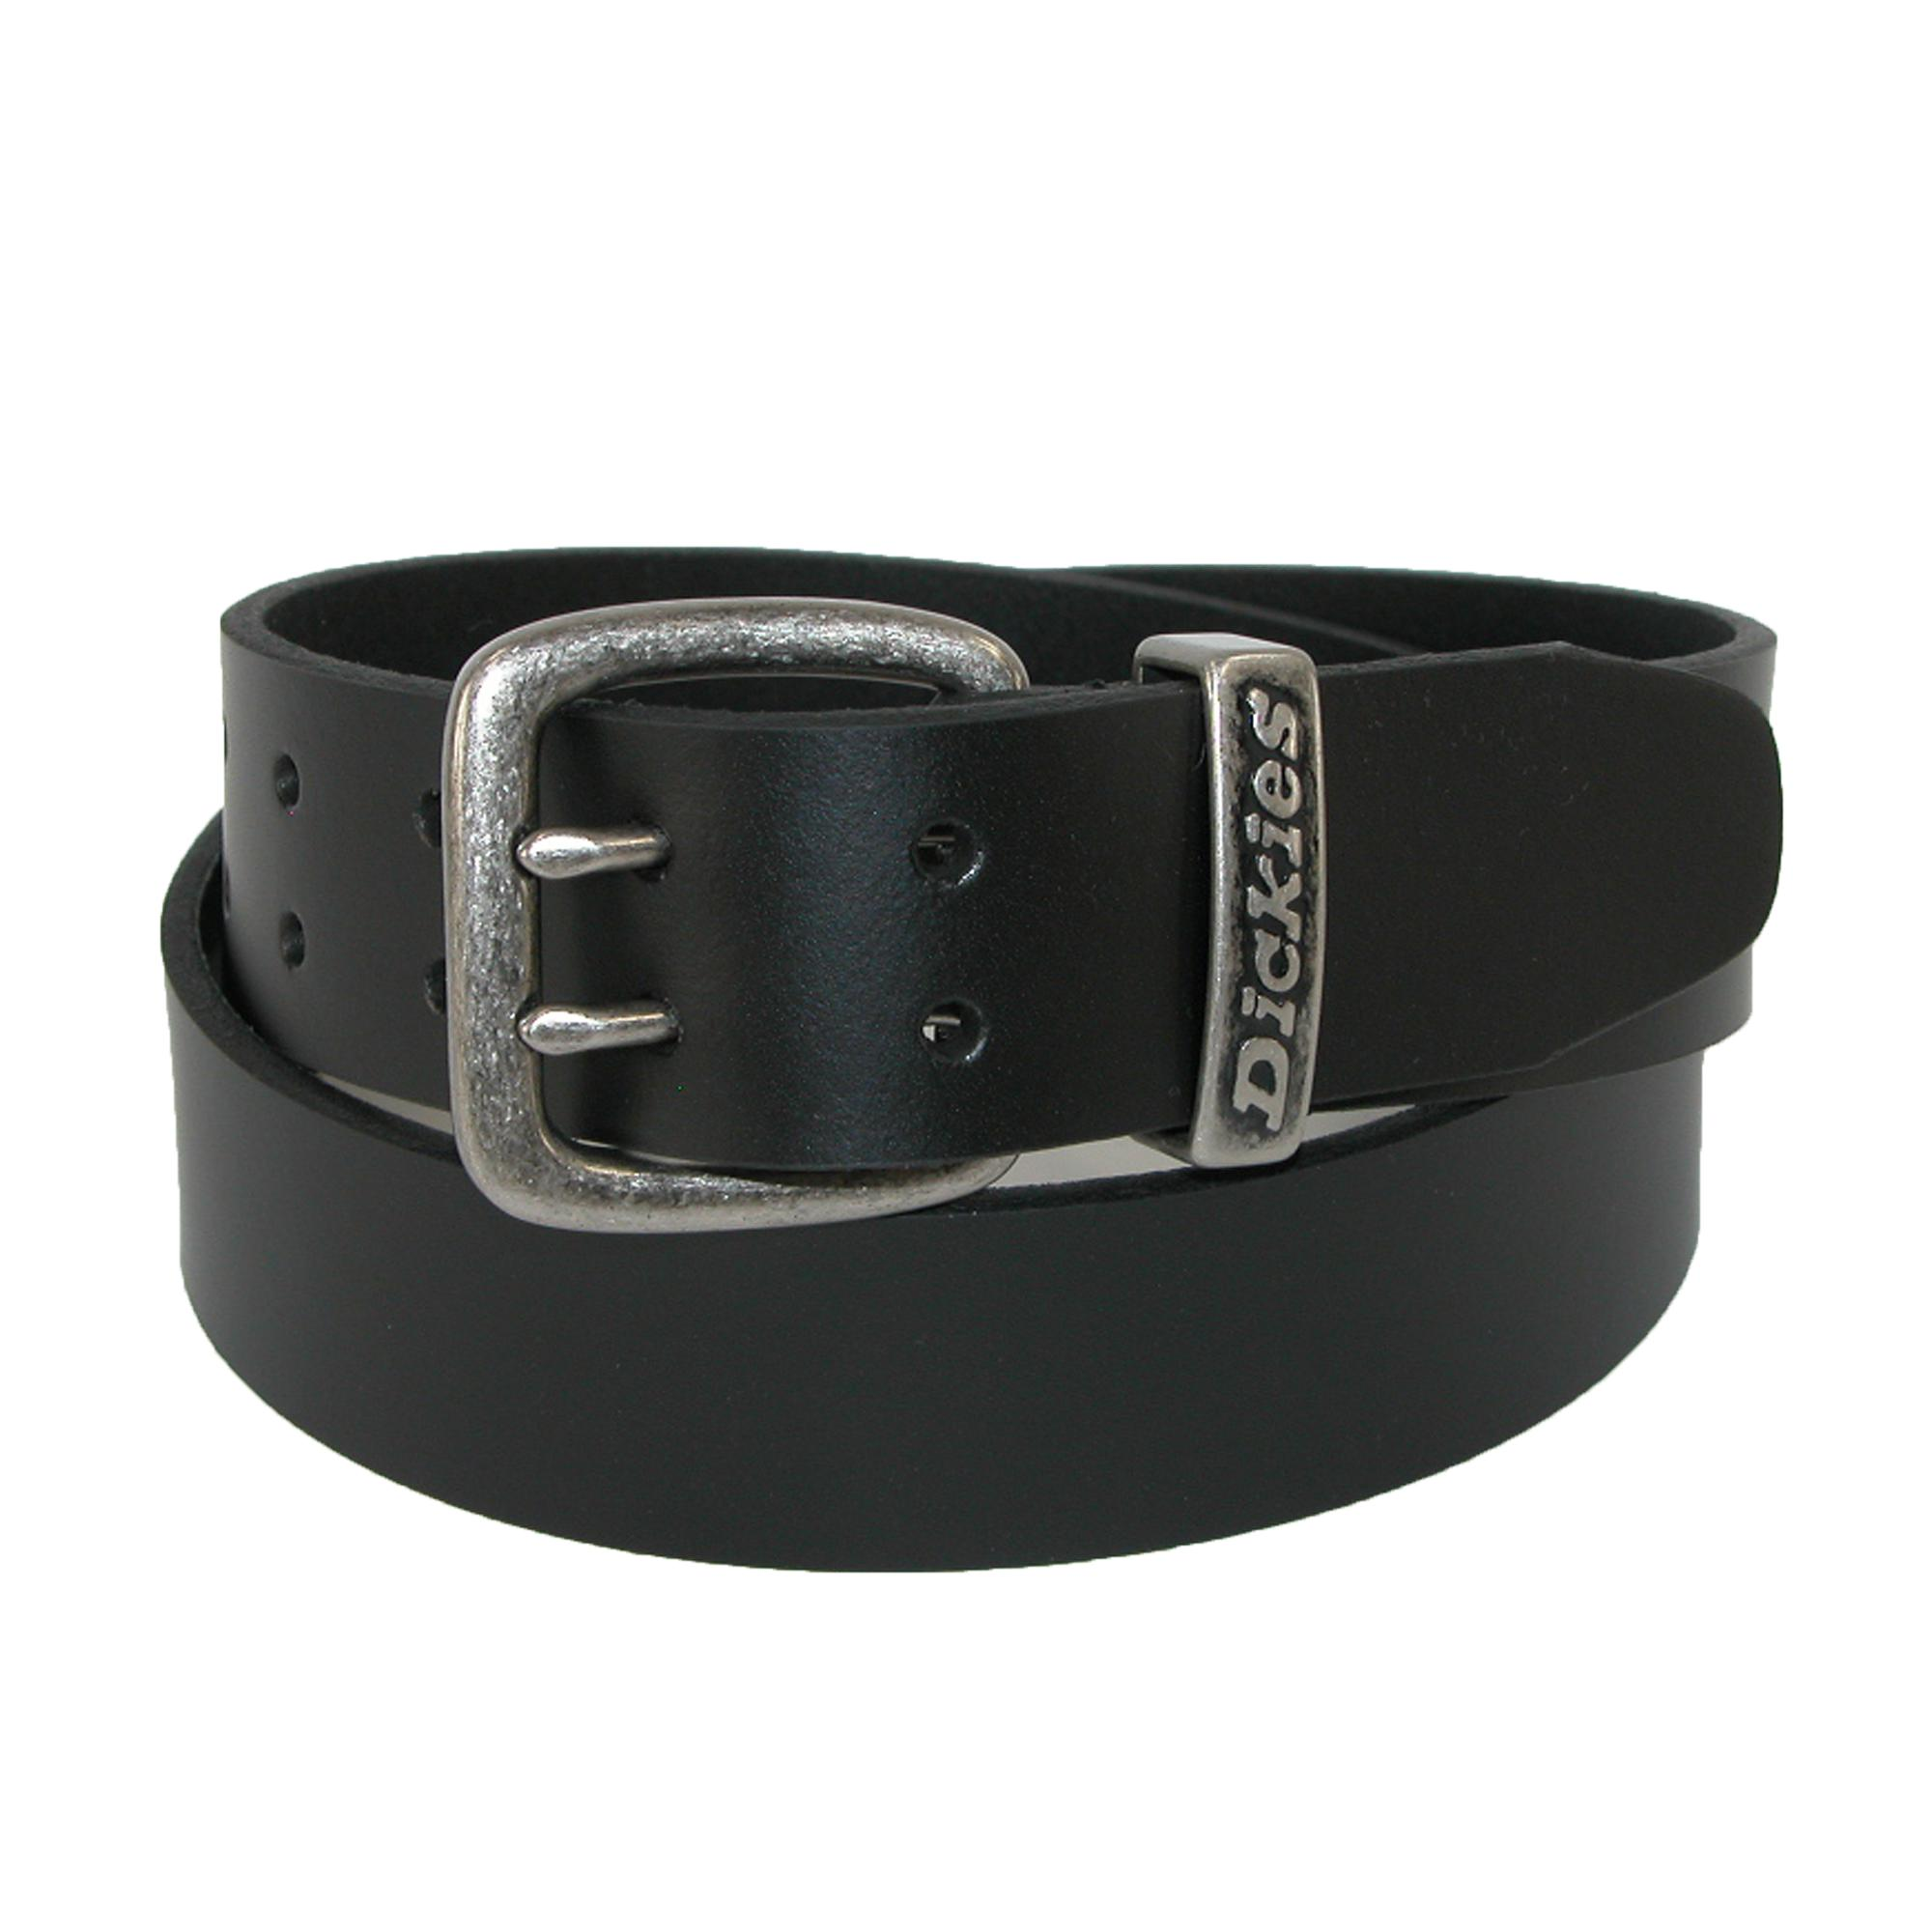 Dickies Mens Big & Tall Leather Double Prong 1 1/2 Inch Belt